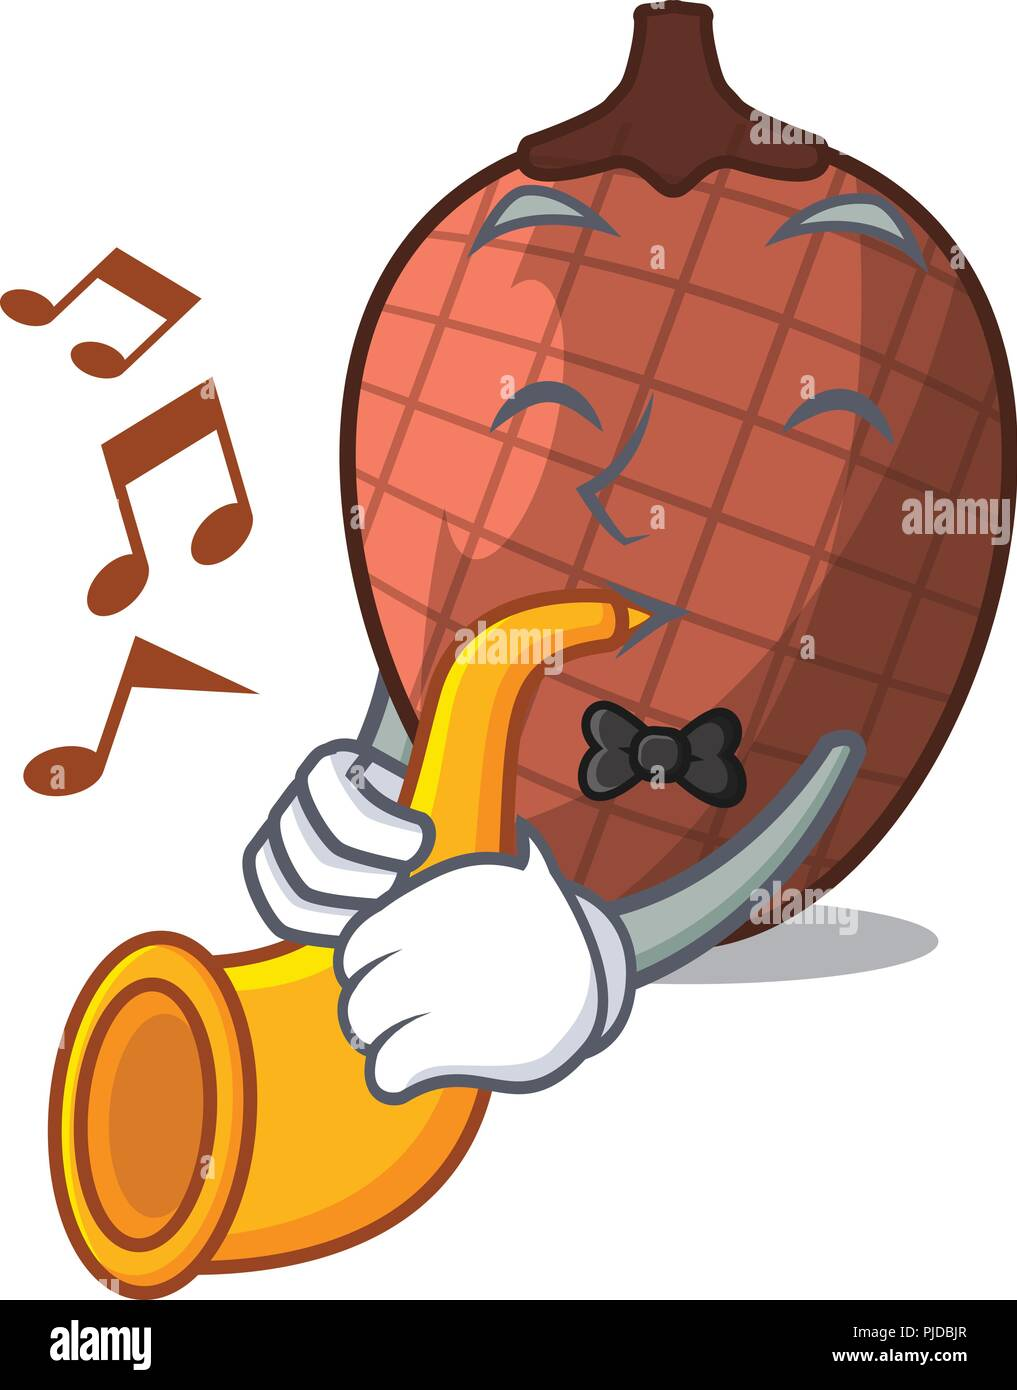 With trumpet mascot cartoon of moriche palm fruits - Stock Image